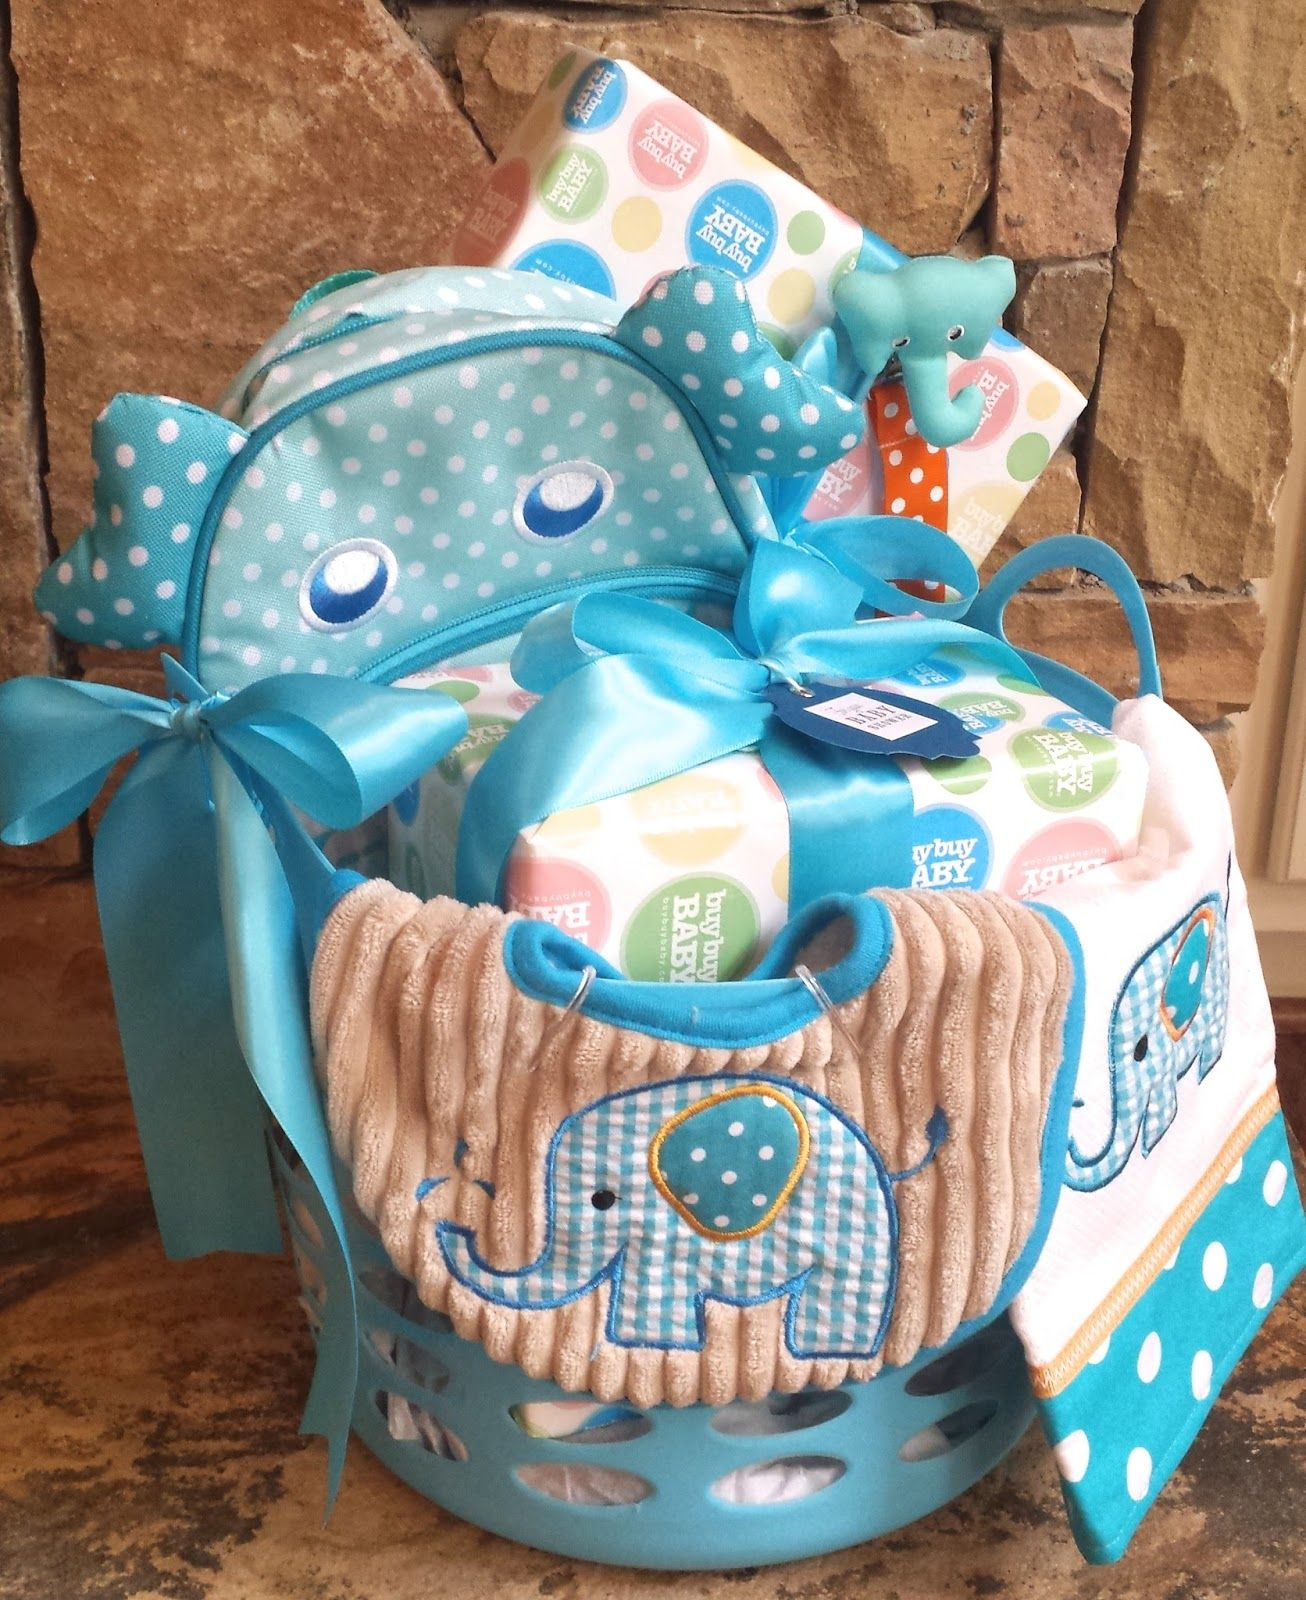 Tips for arranging gift baskets elephant baby shower basket homemadeville craft and diy tutorials party decor ideas how to videos tips for arranging gift baskets elephant baby shower basket negle Images